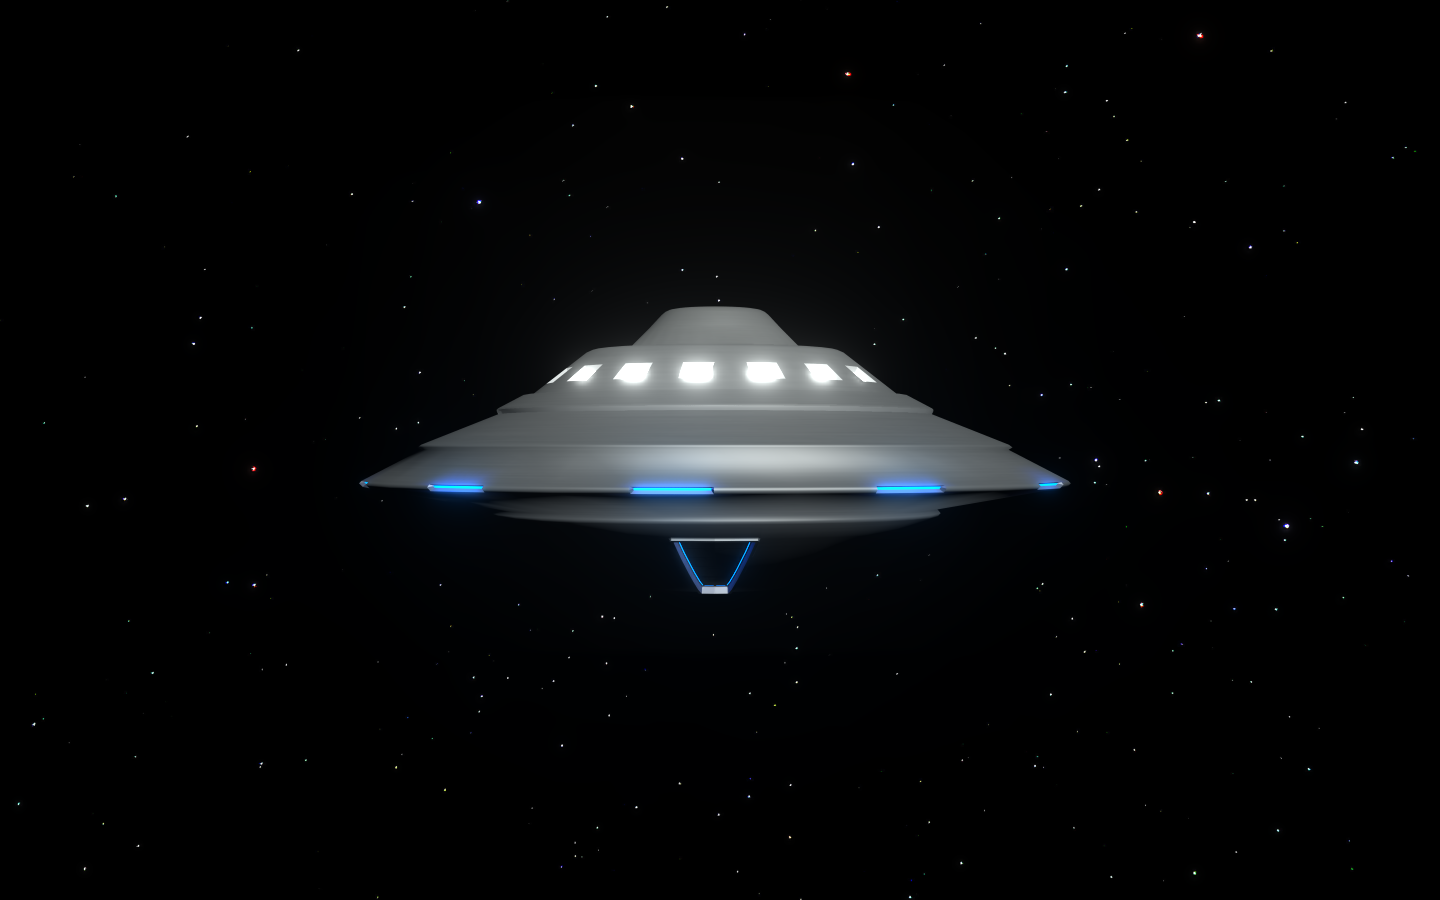 Classic Style UFO